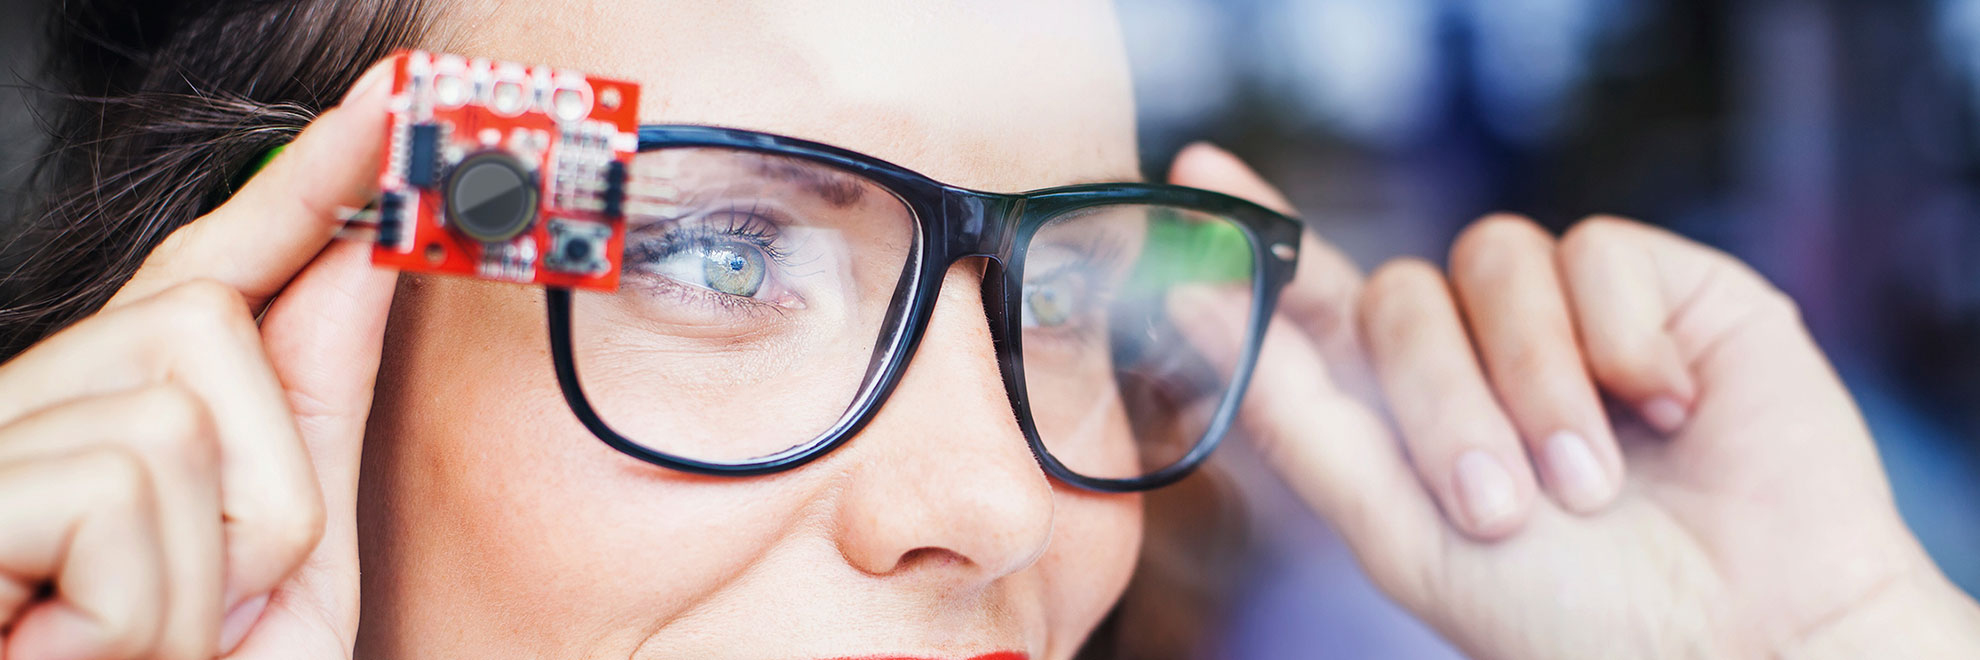 woman smart glasses